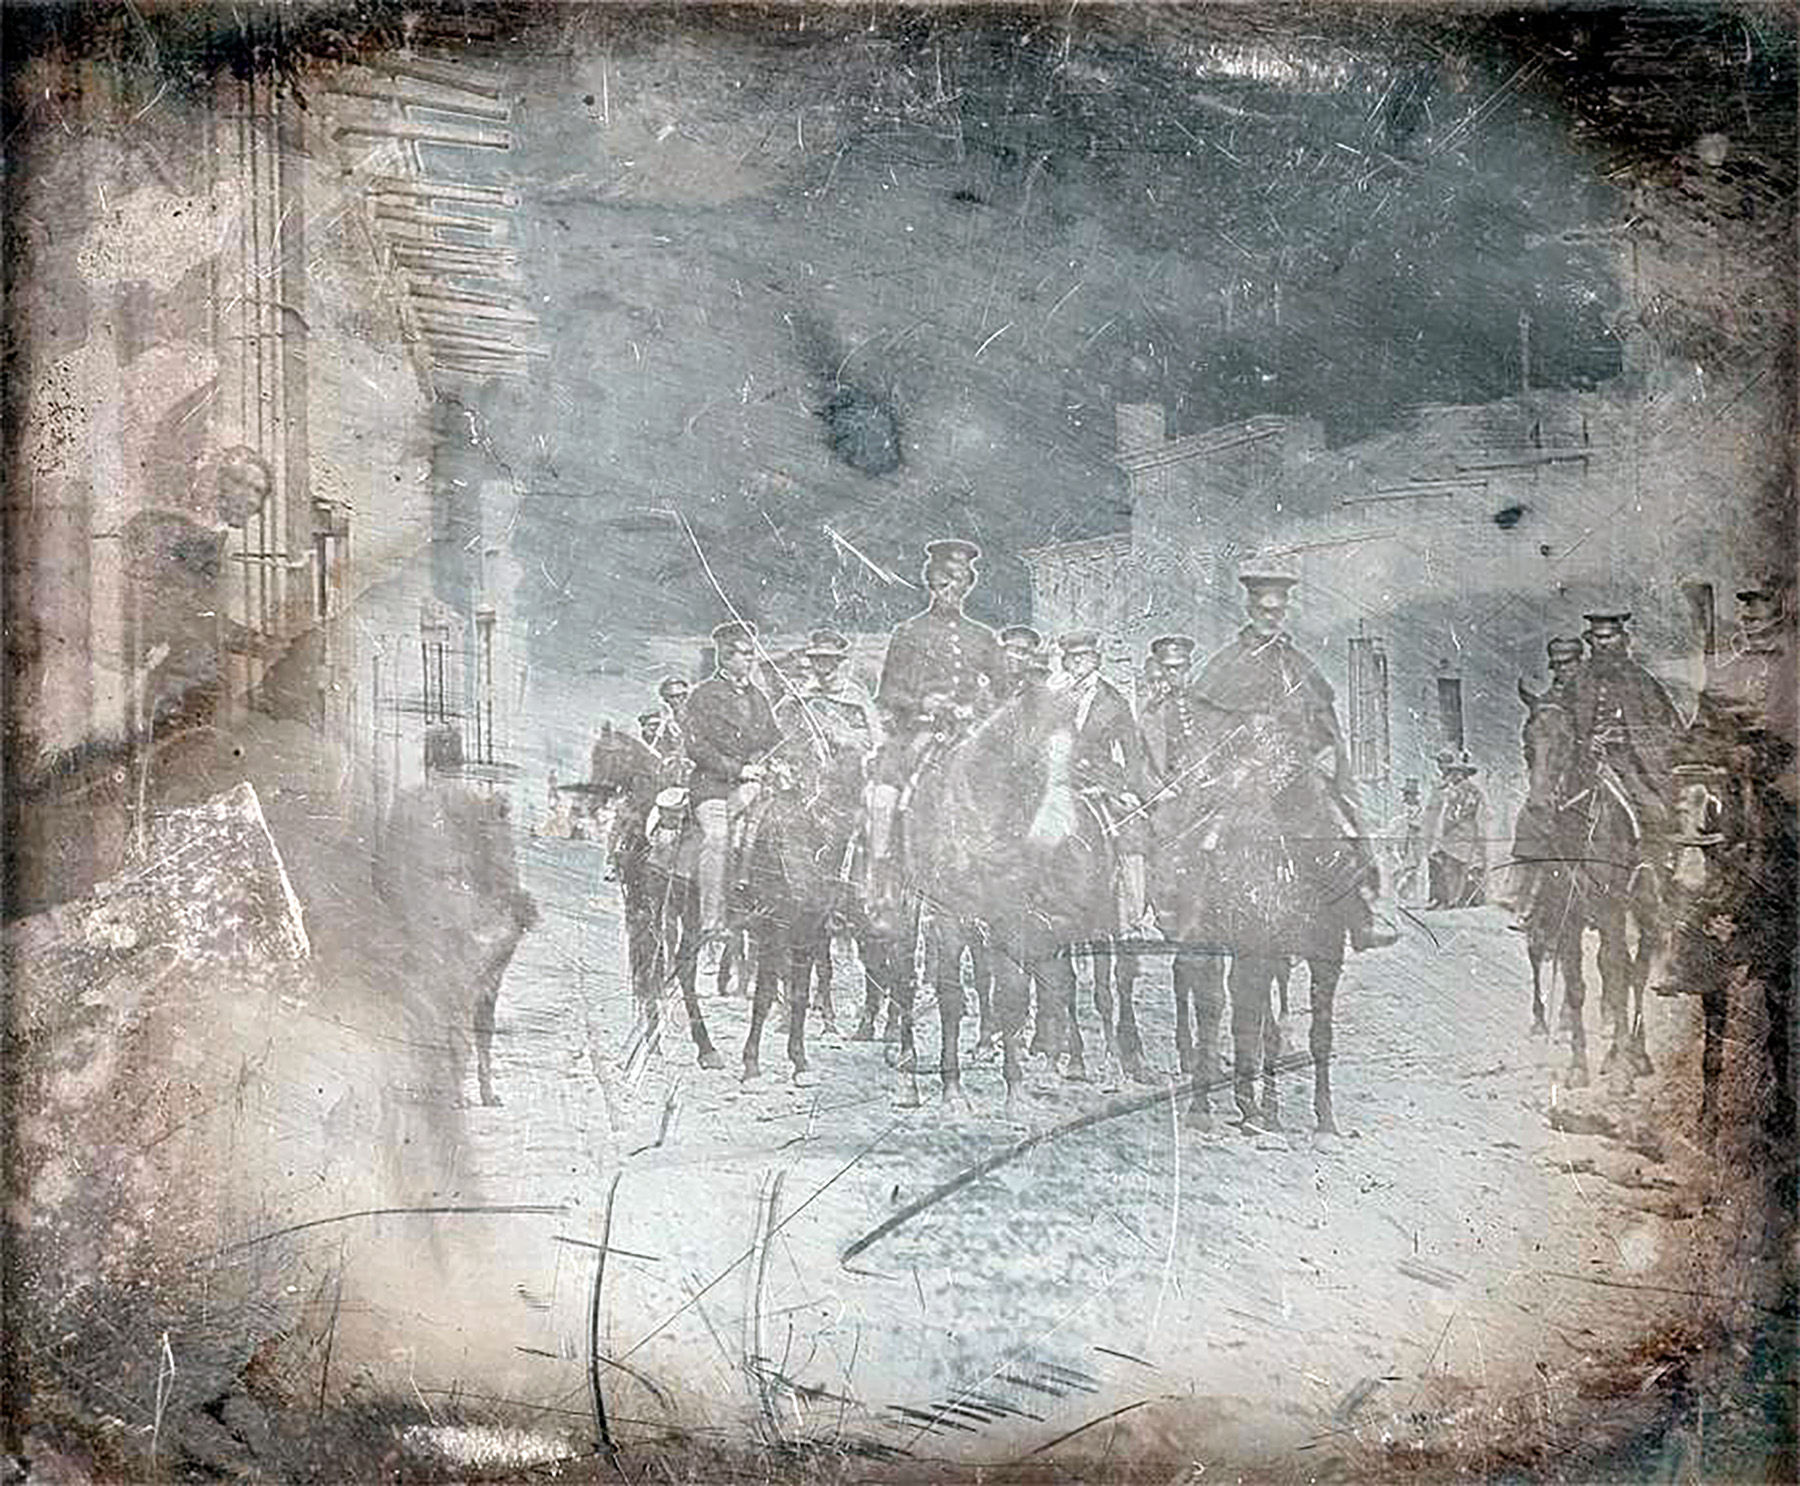 Unknown photographer, General Wool and staff in the Calle Real, Saltillo, Mexico, c. 1847.